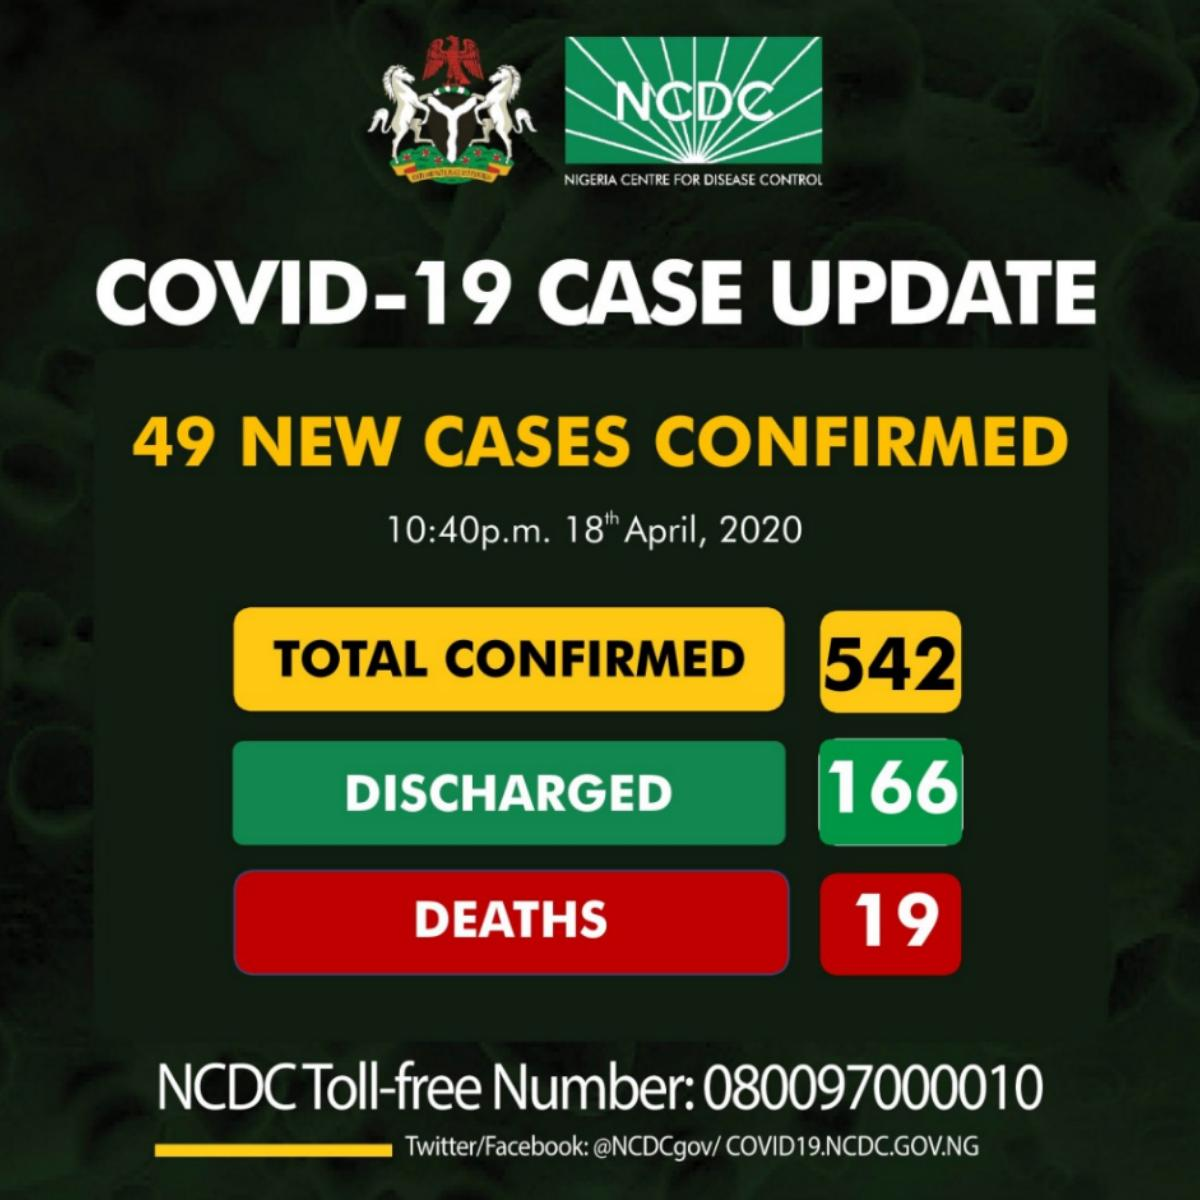 COVID-19 Confirmed Cases In Nigeria Today 542